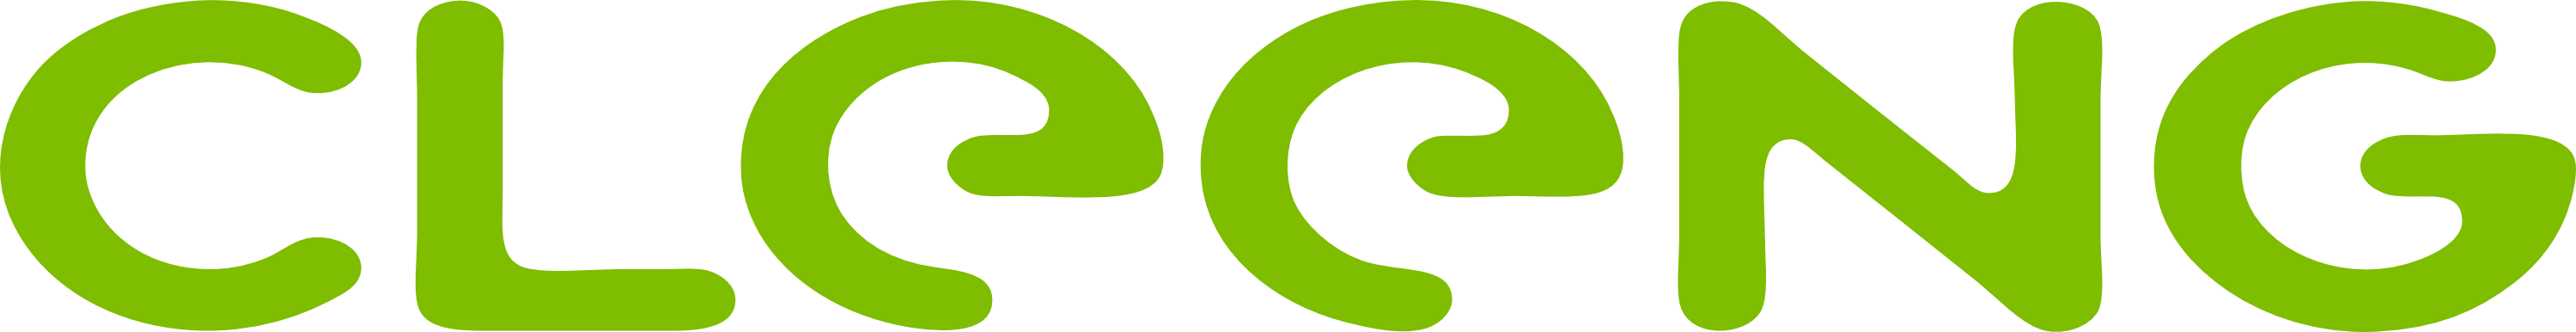 Cleeng logo - green without tagline